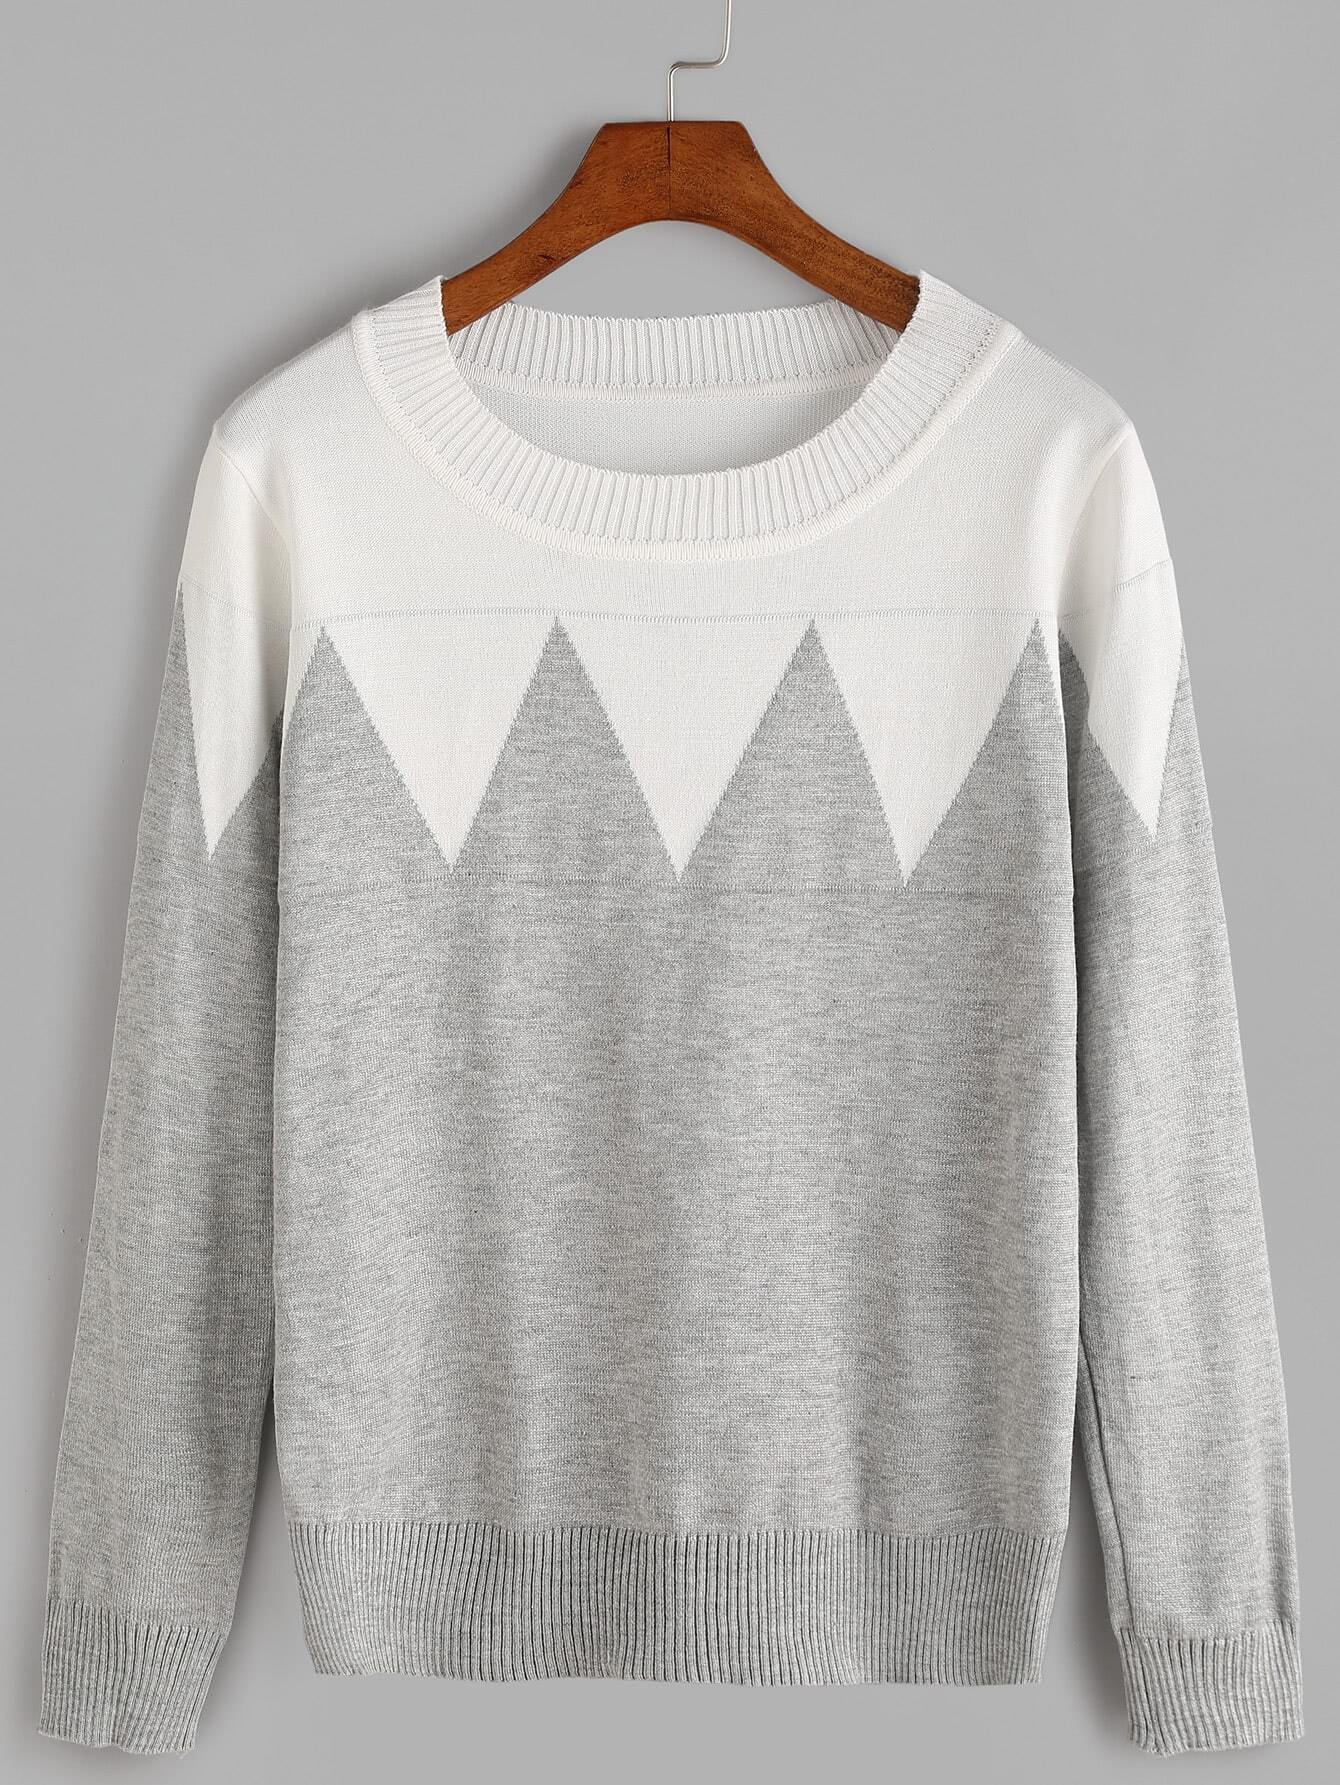 Grey Color Block Ribbed Trim Knitwear sweater161013032